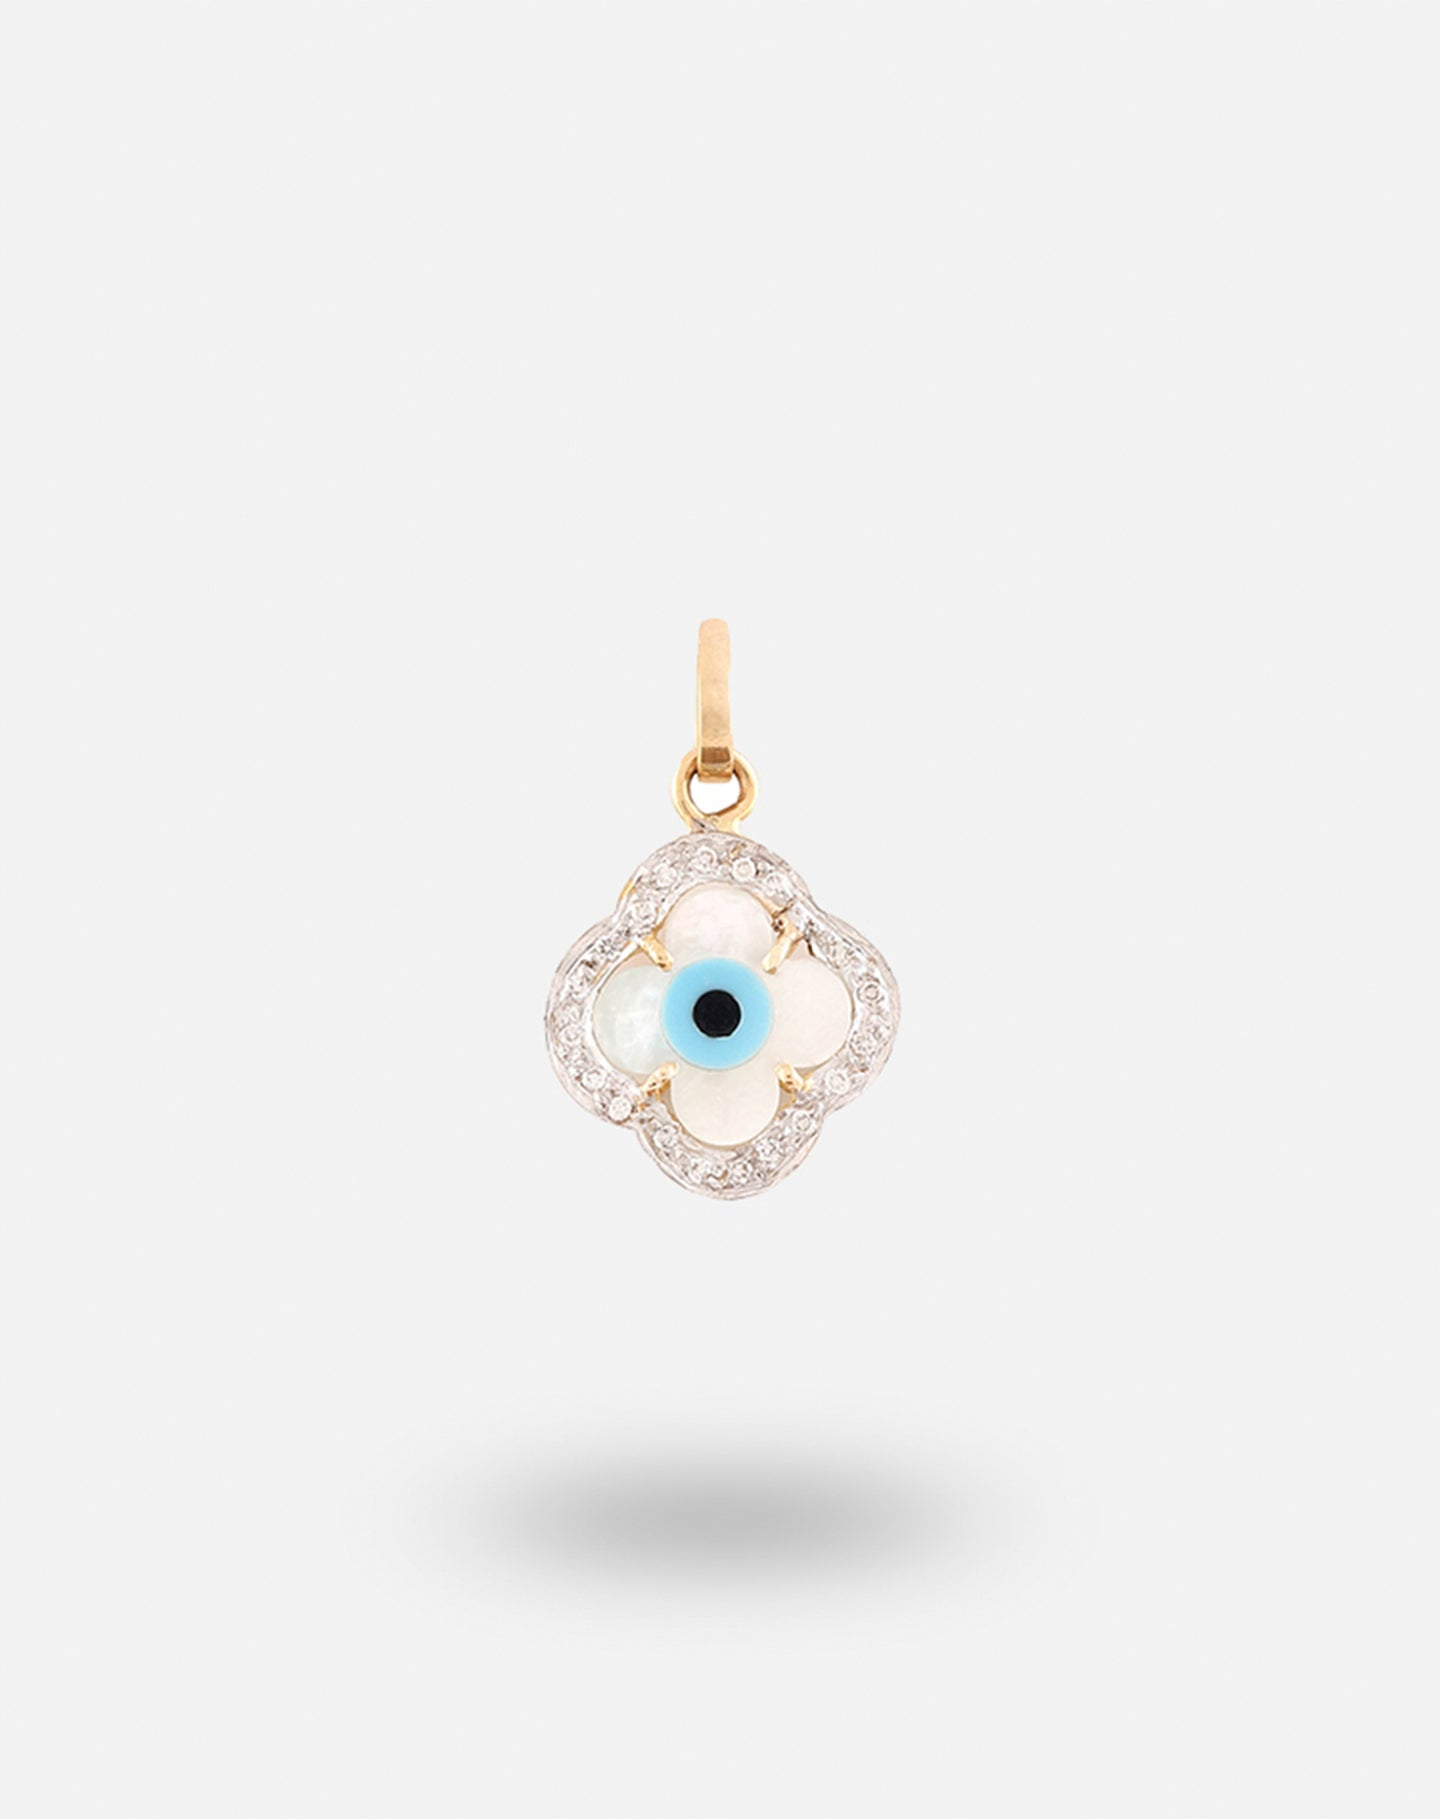 Gold Evil Eye Charm - Clover with Diamonds